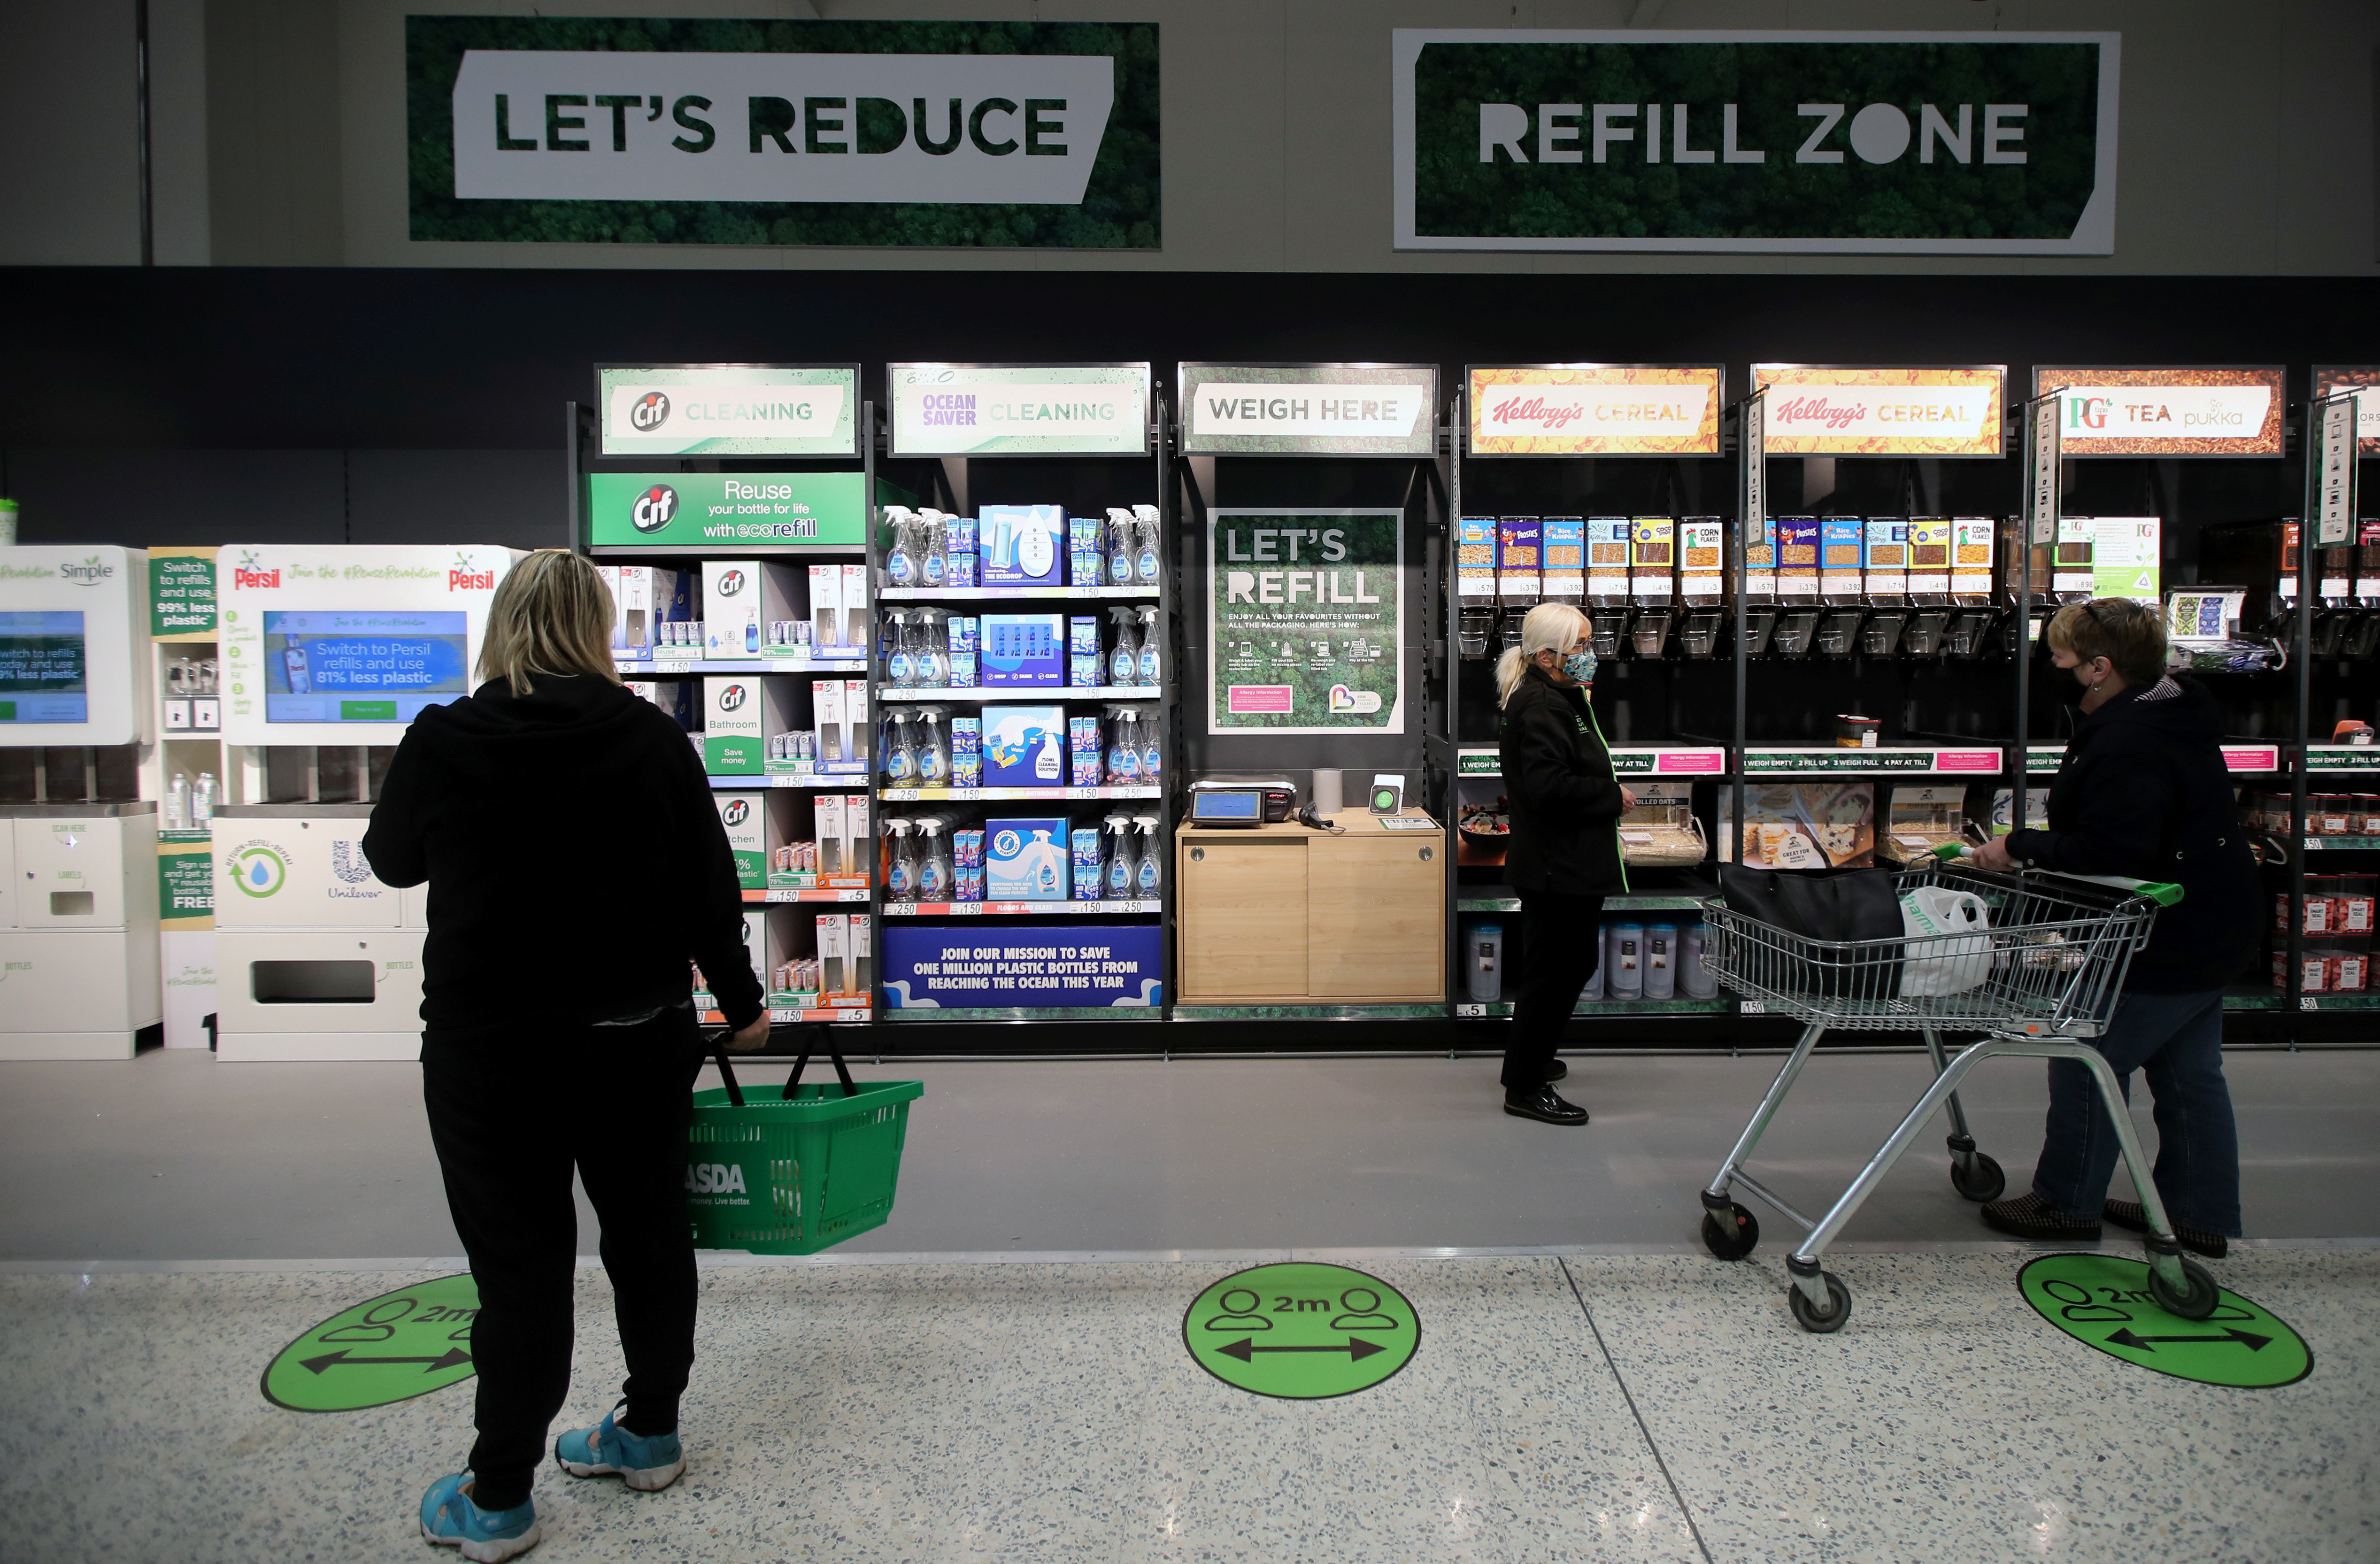 The 'Refill Zone' is seen in the UK supermarket Asda, as the store launches a new sustainability strategy, in Leeds, Britain, October 19, 2020. Picture taken October 19, 2020. REUTERS/Molly Darlington - RC27MJ9NR2B9